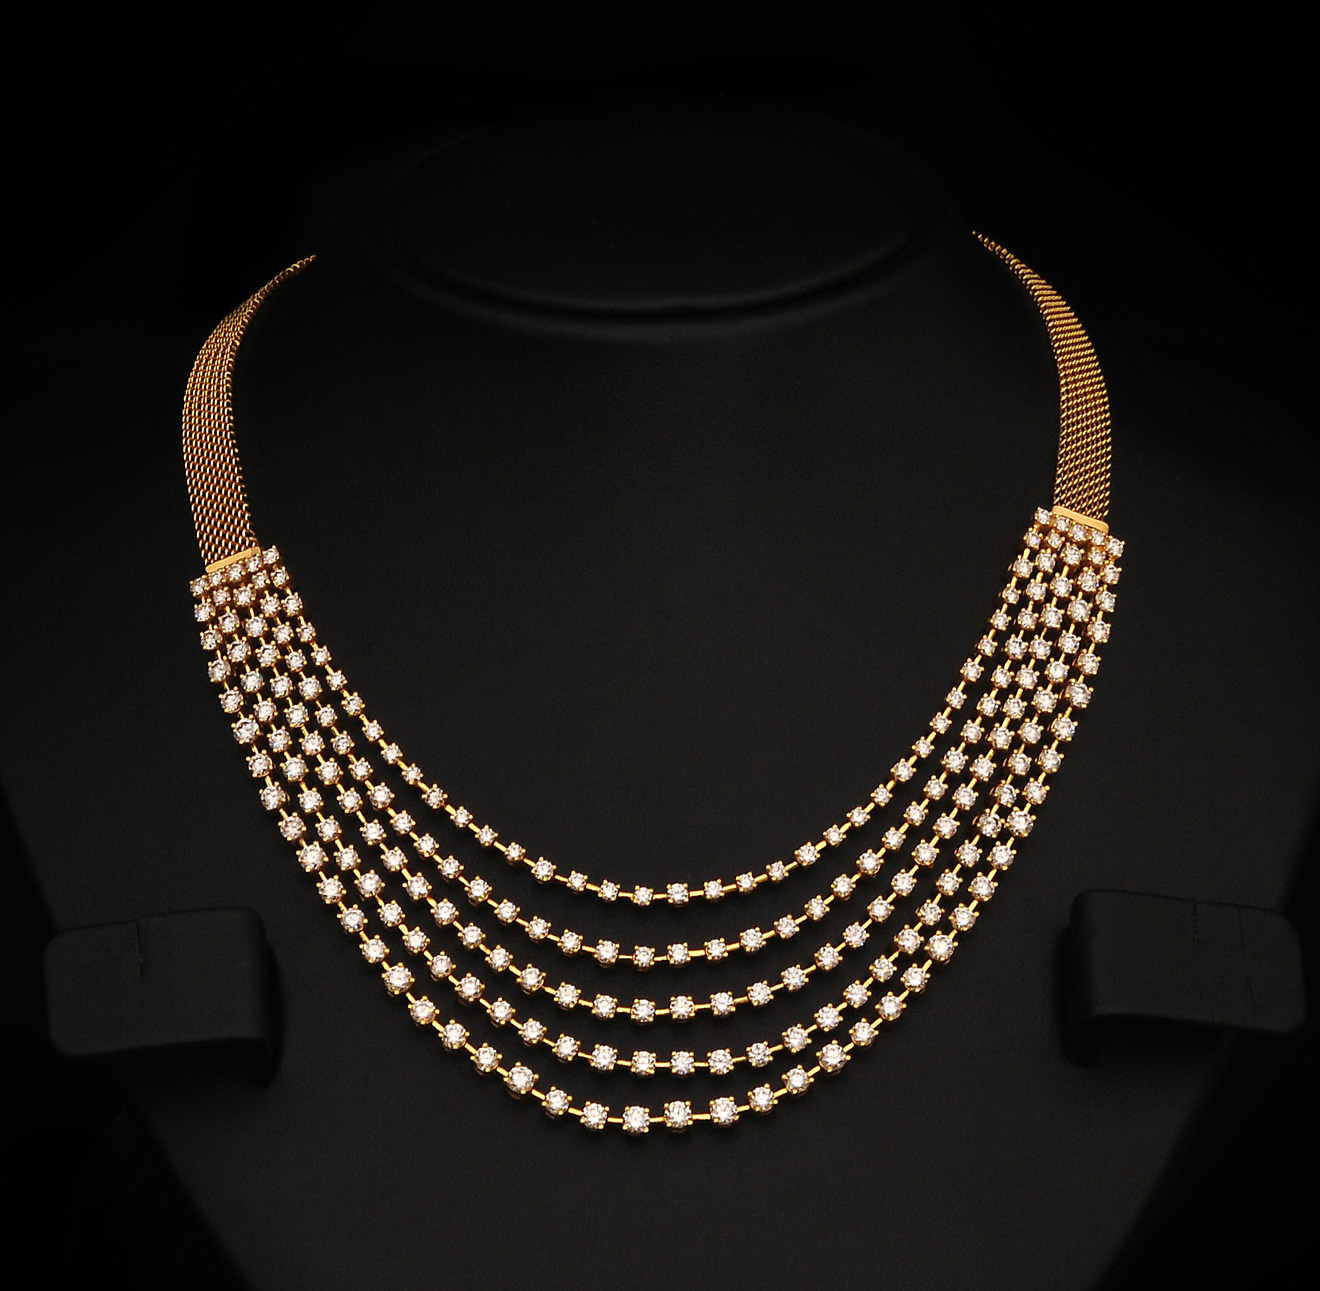 Pai jewellers gold necklace designs latest indian jewellery designs - Pai Jewellers Gold Necklace Designs Latest Indian Jewellery Designs 36